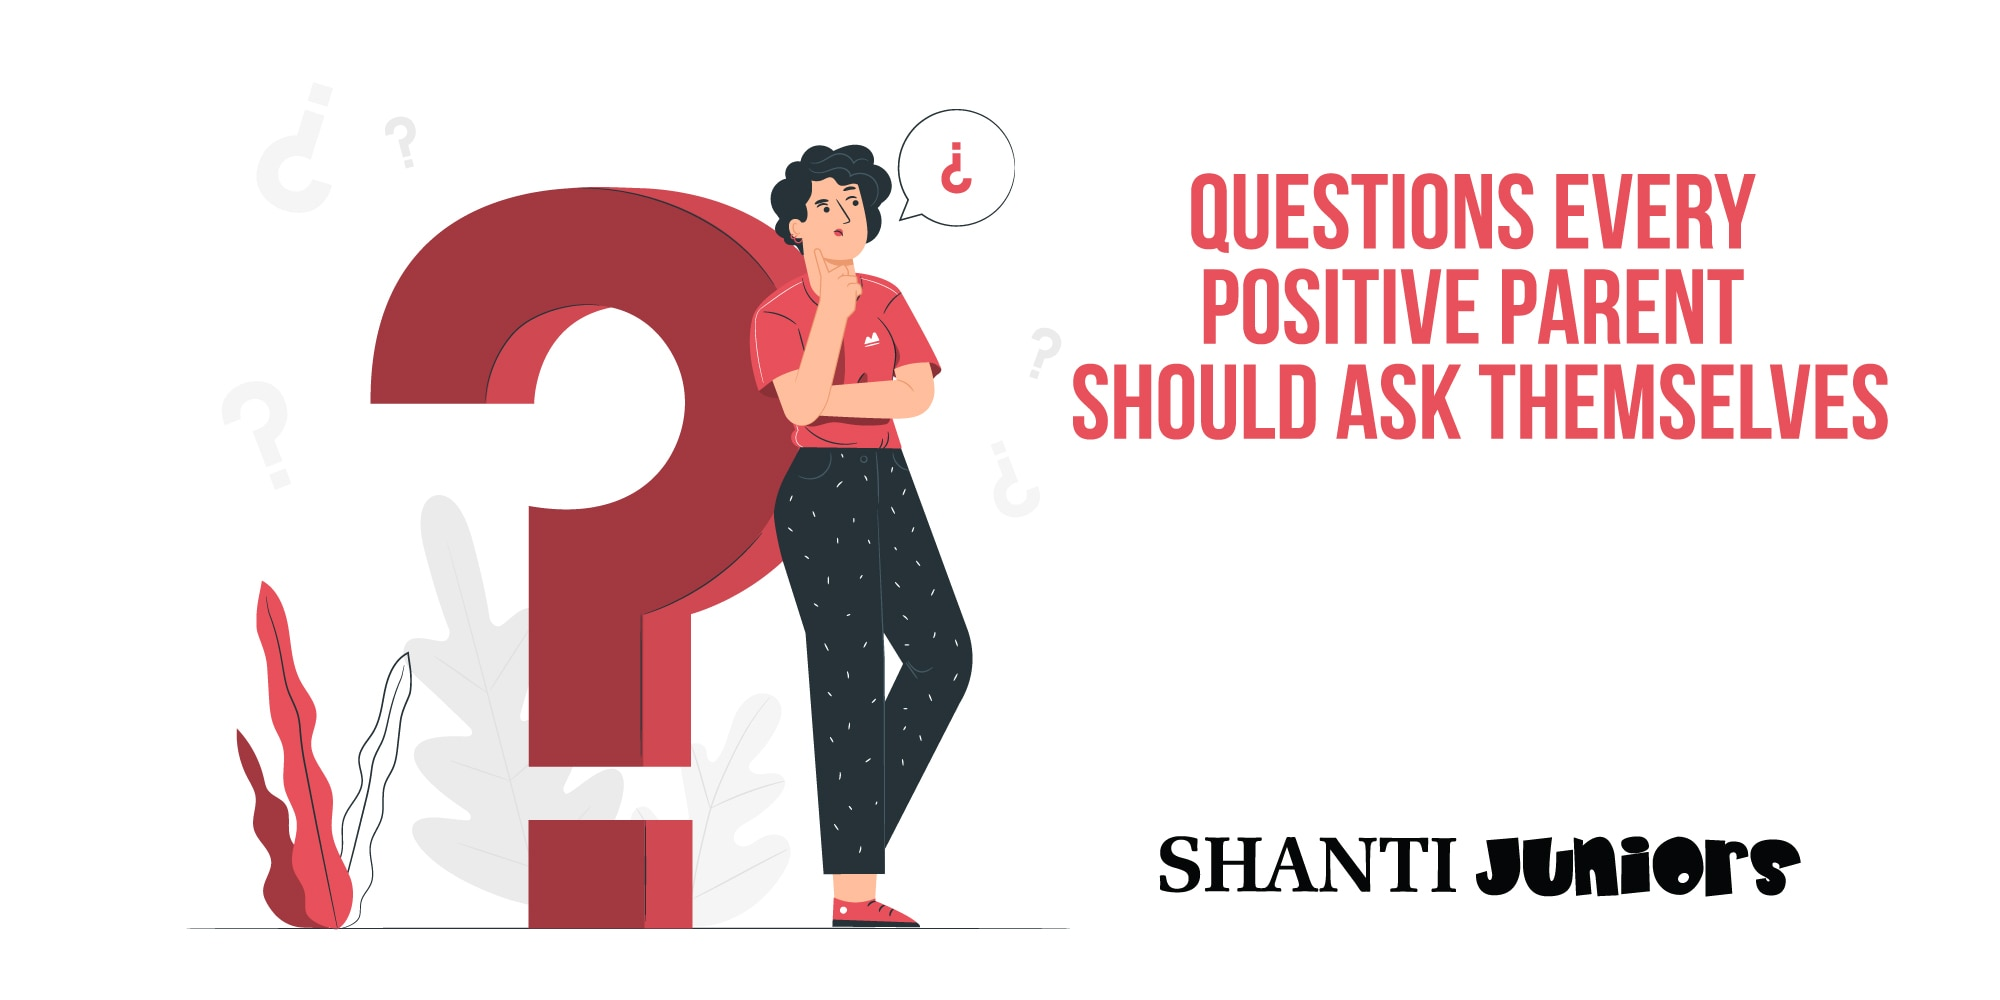 Questions Every Positive Parent Should Ask Themselves